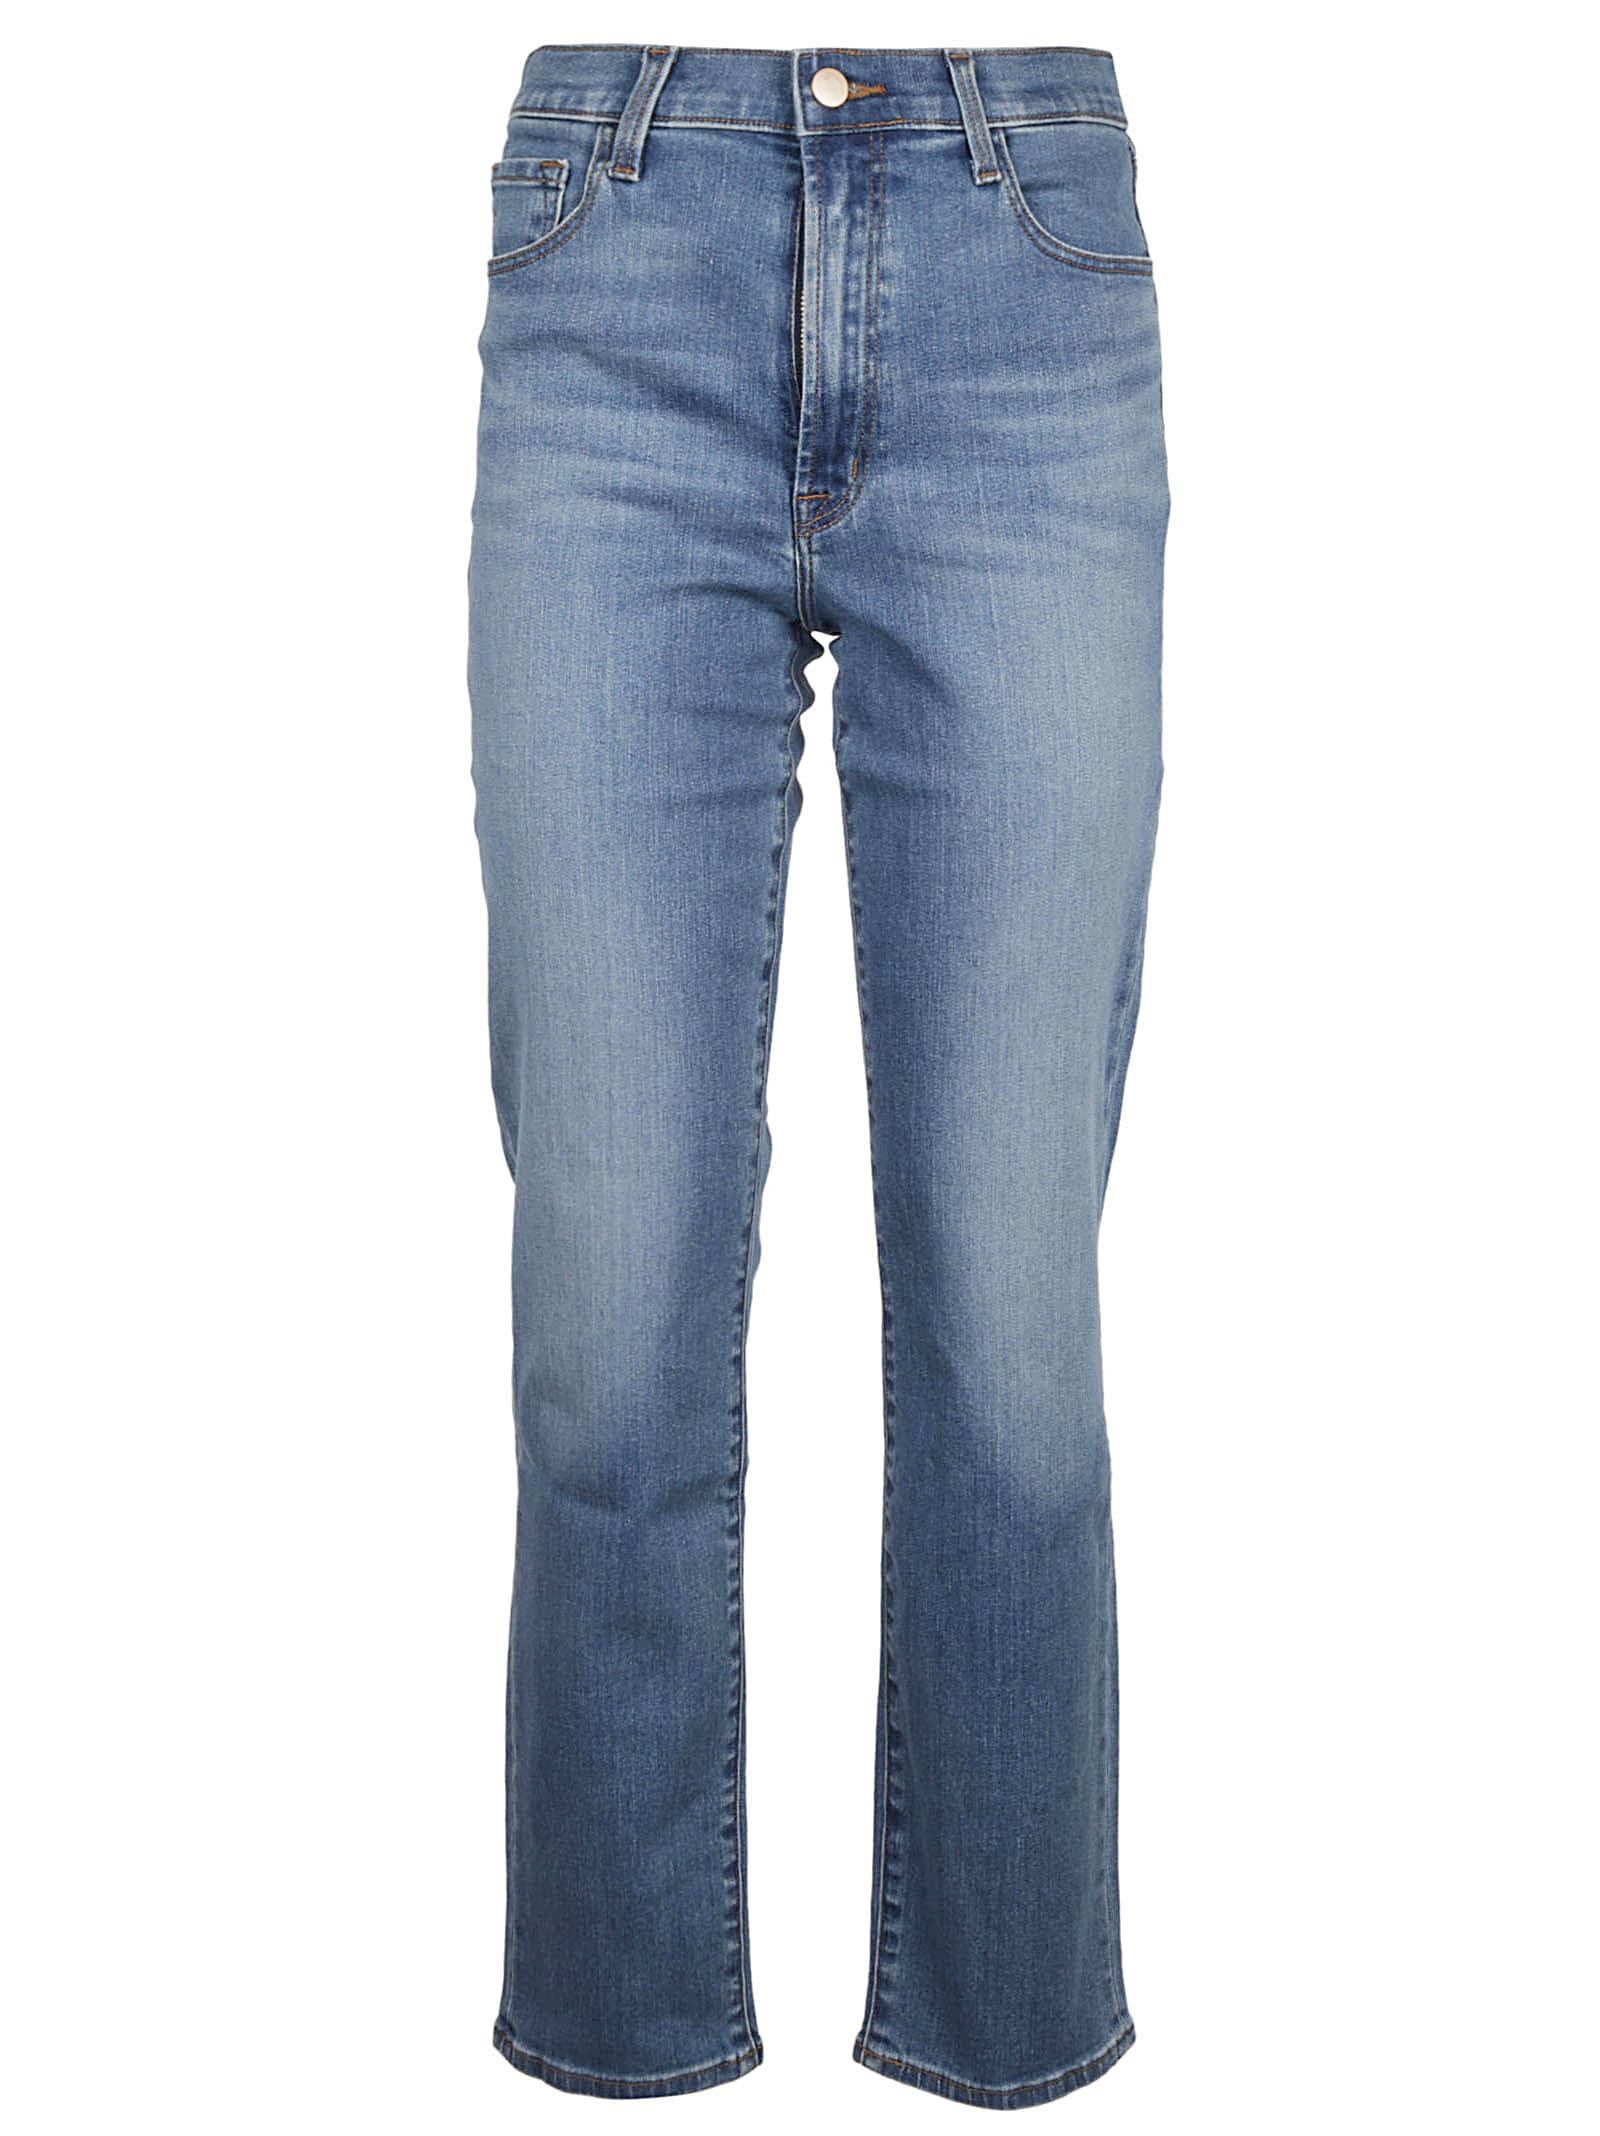 J Brand Cottons TEAGAN HIGH RISE SLIM JEANS